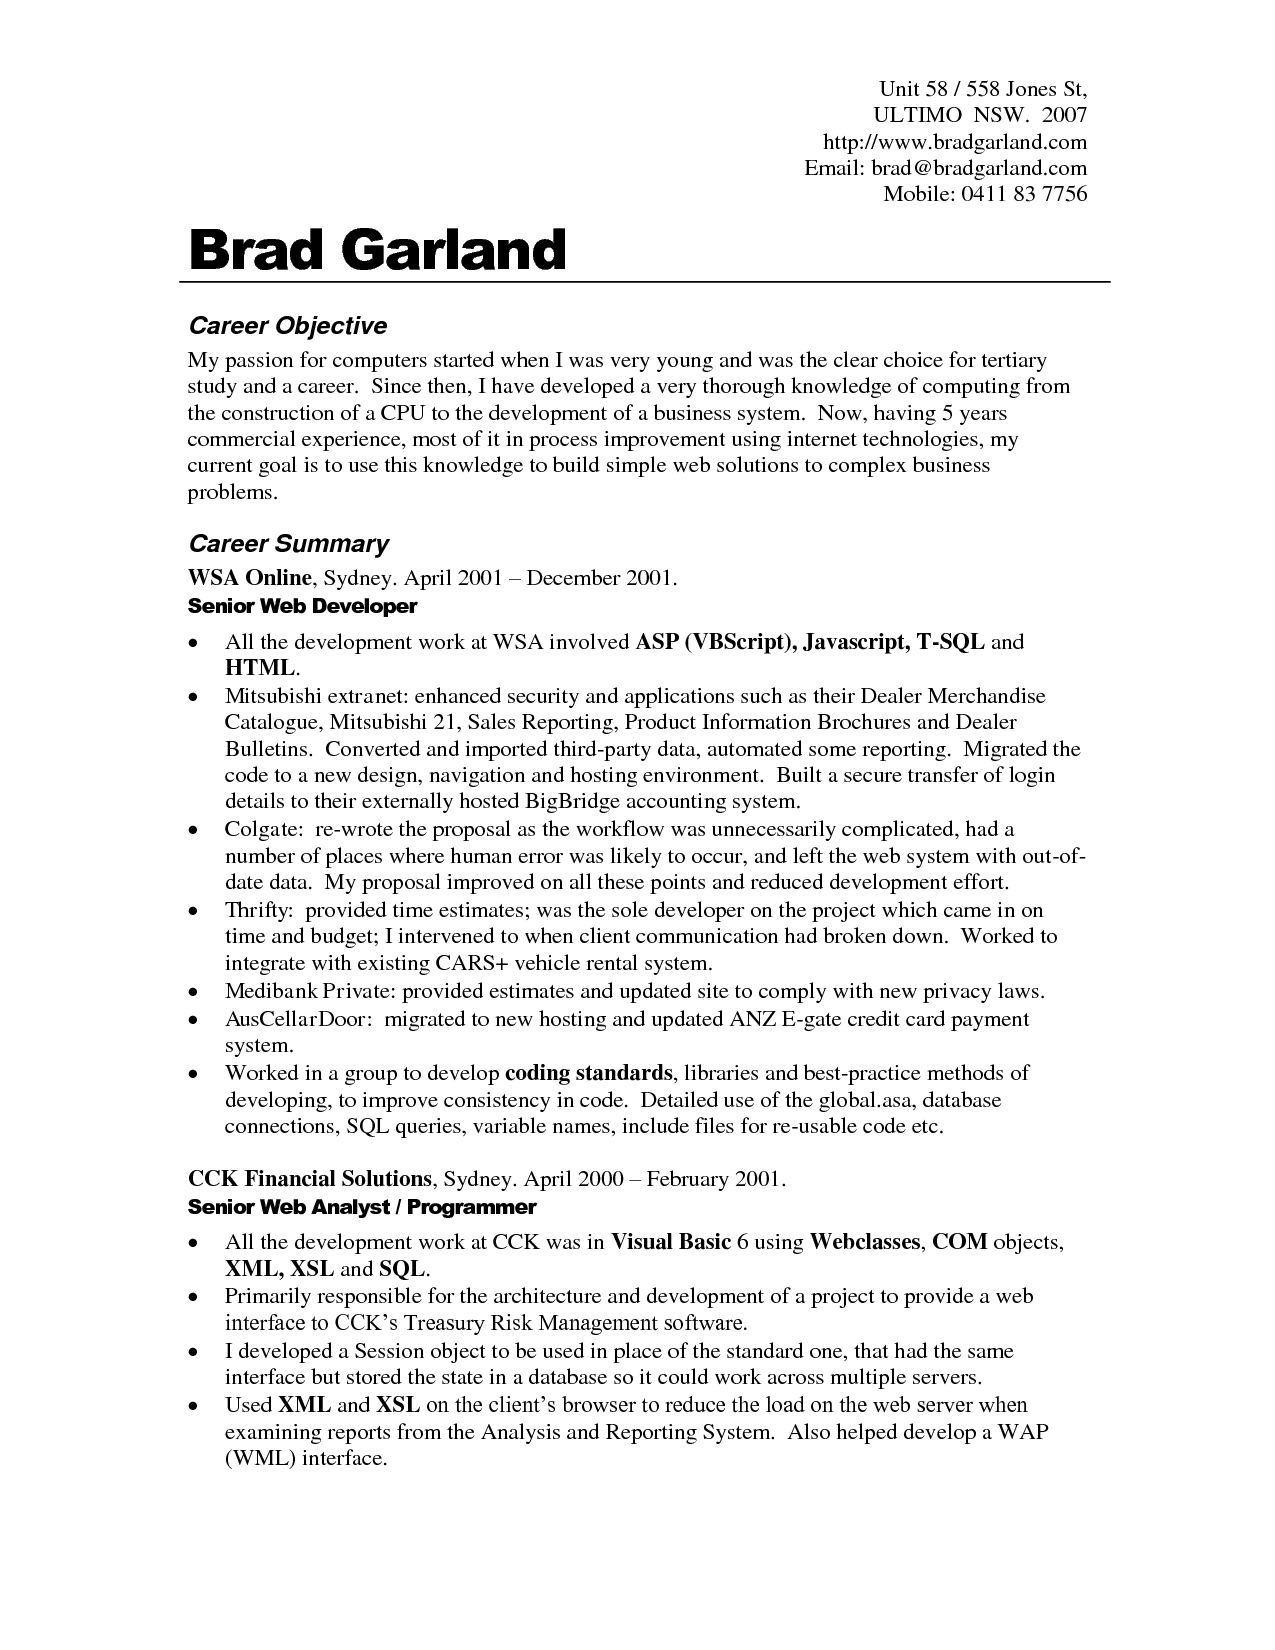 Example Of An Objective On A Resume Sample Resume Action Verbs For Lawyers Formatting Back Post